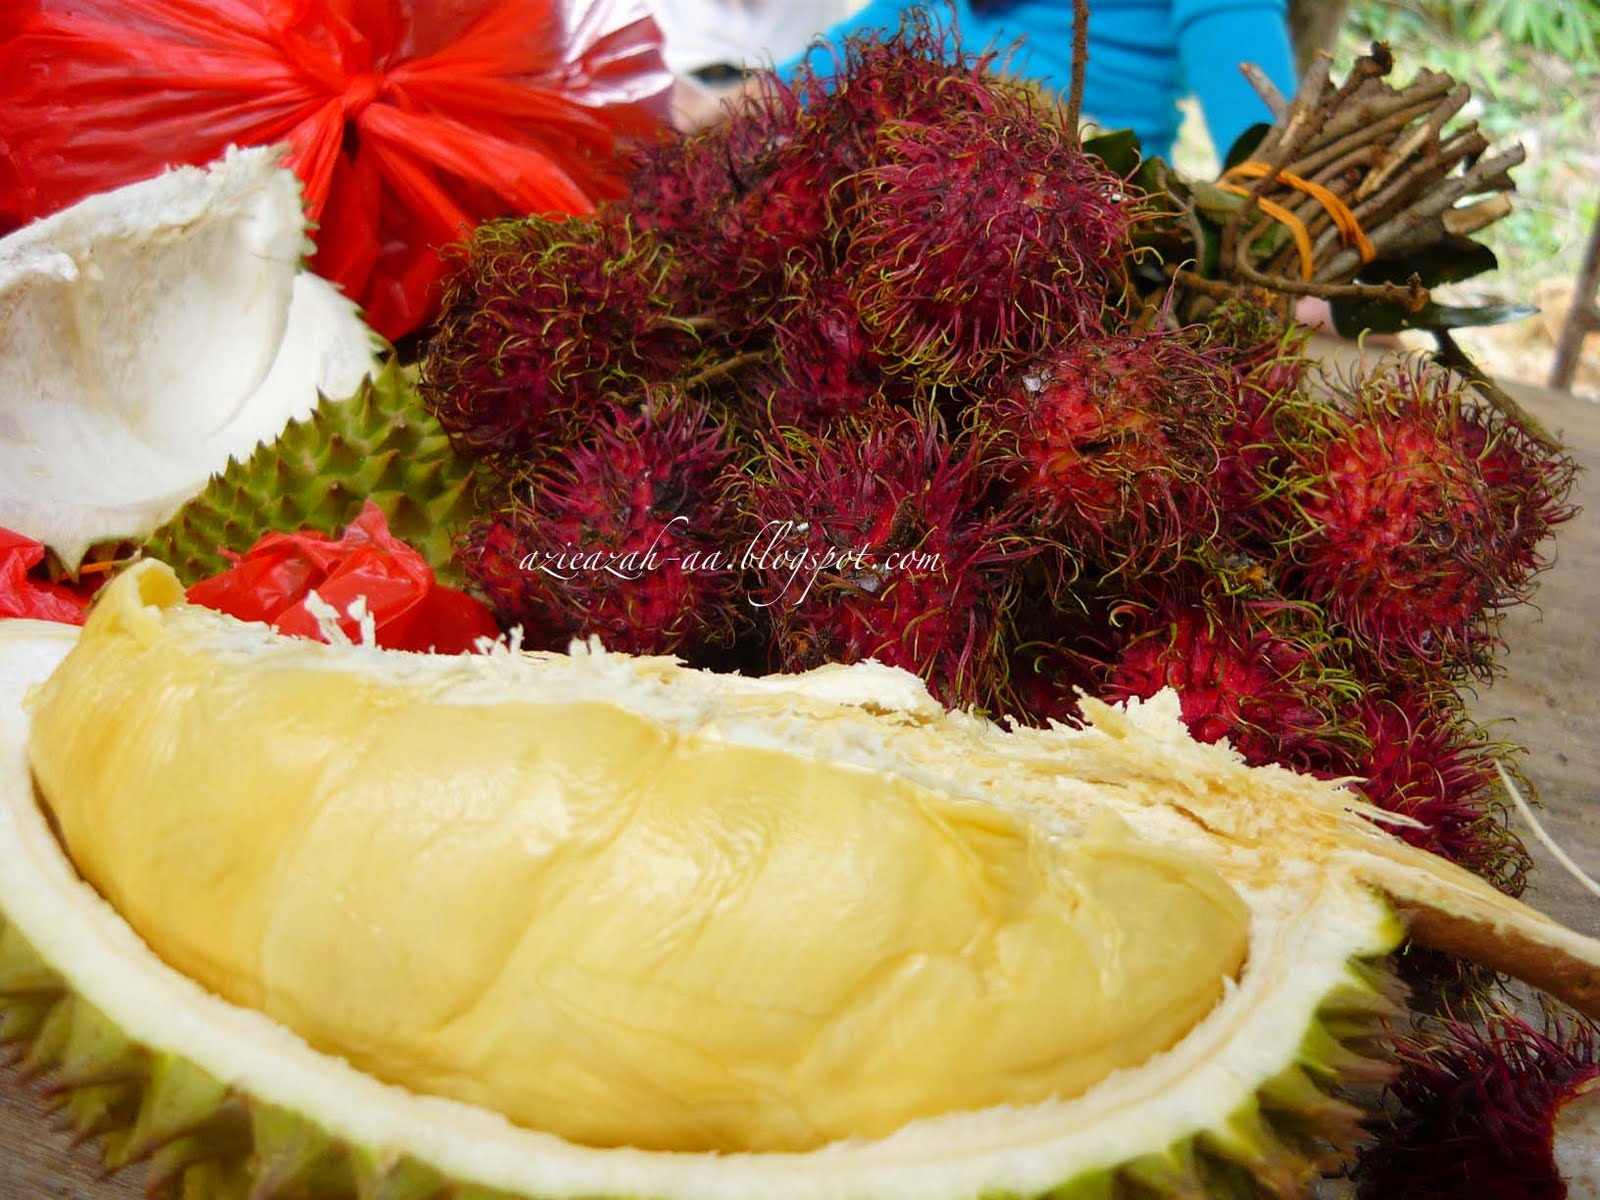 When residents participate in (these durian parties), they feel more vested in the place they live in.